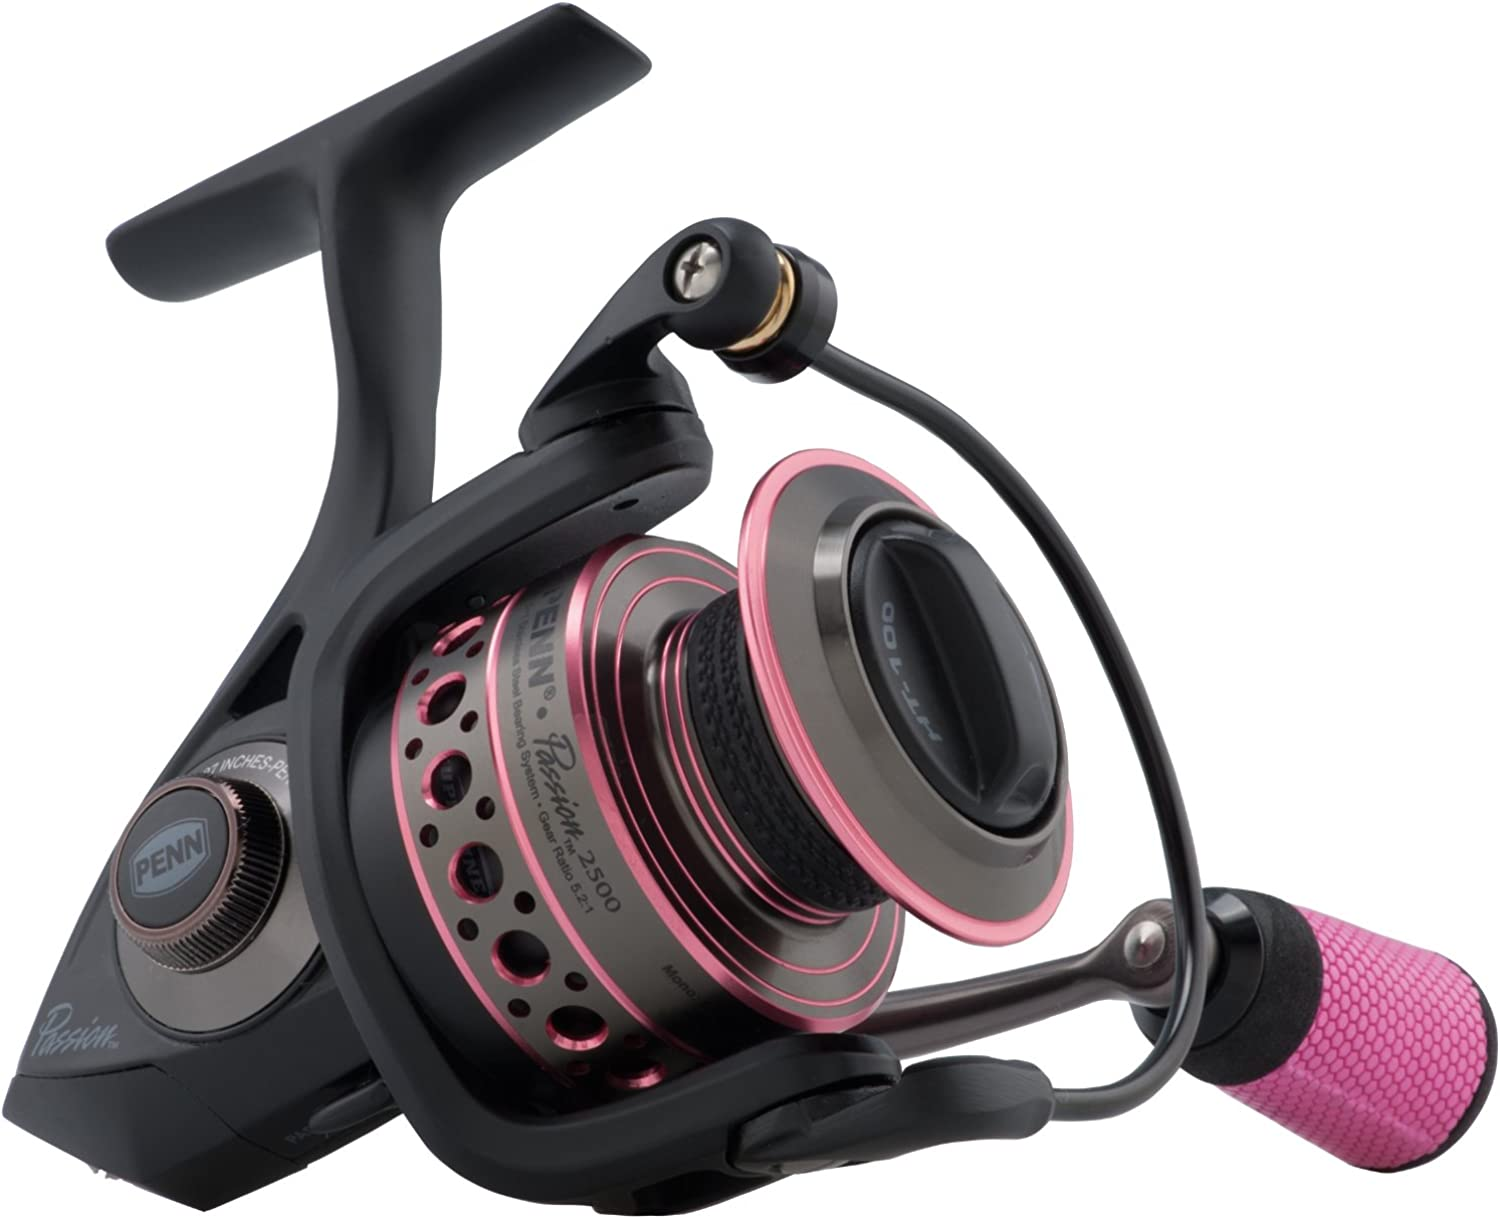 Penn Passion Lady's Spinning Reel